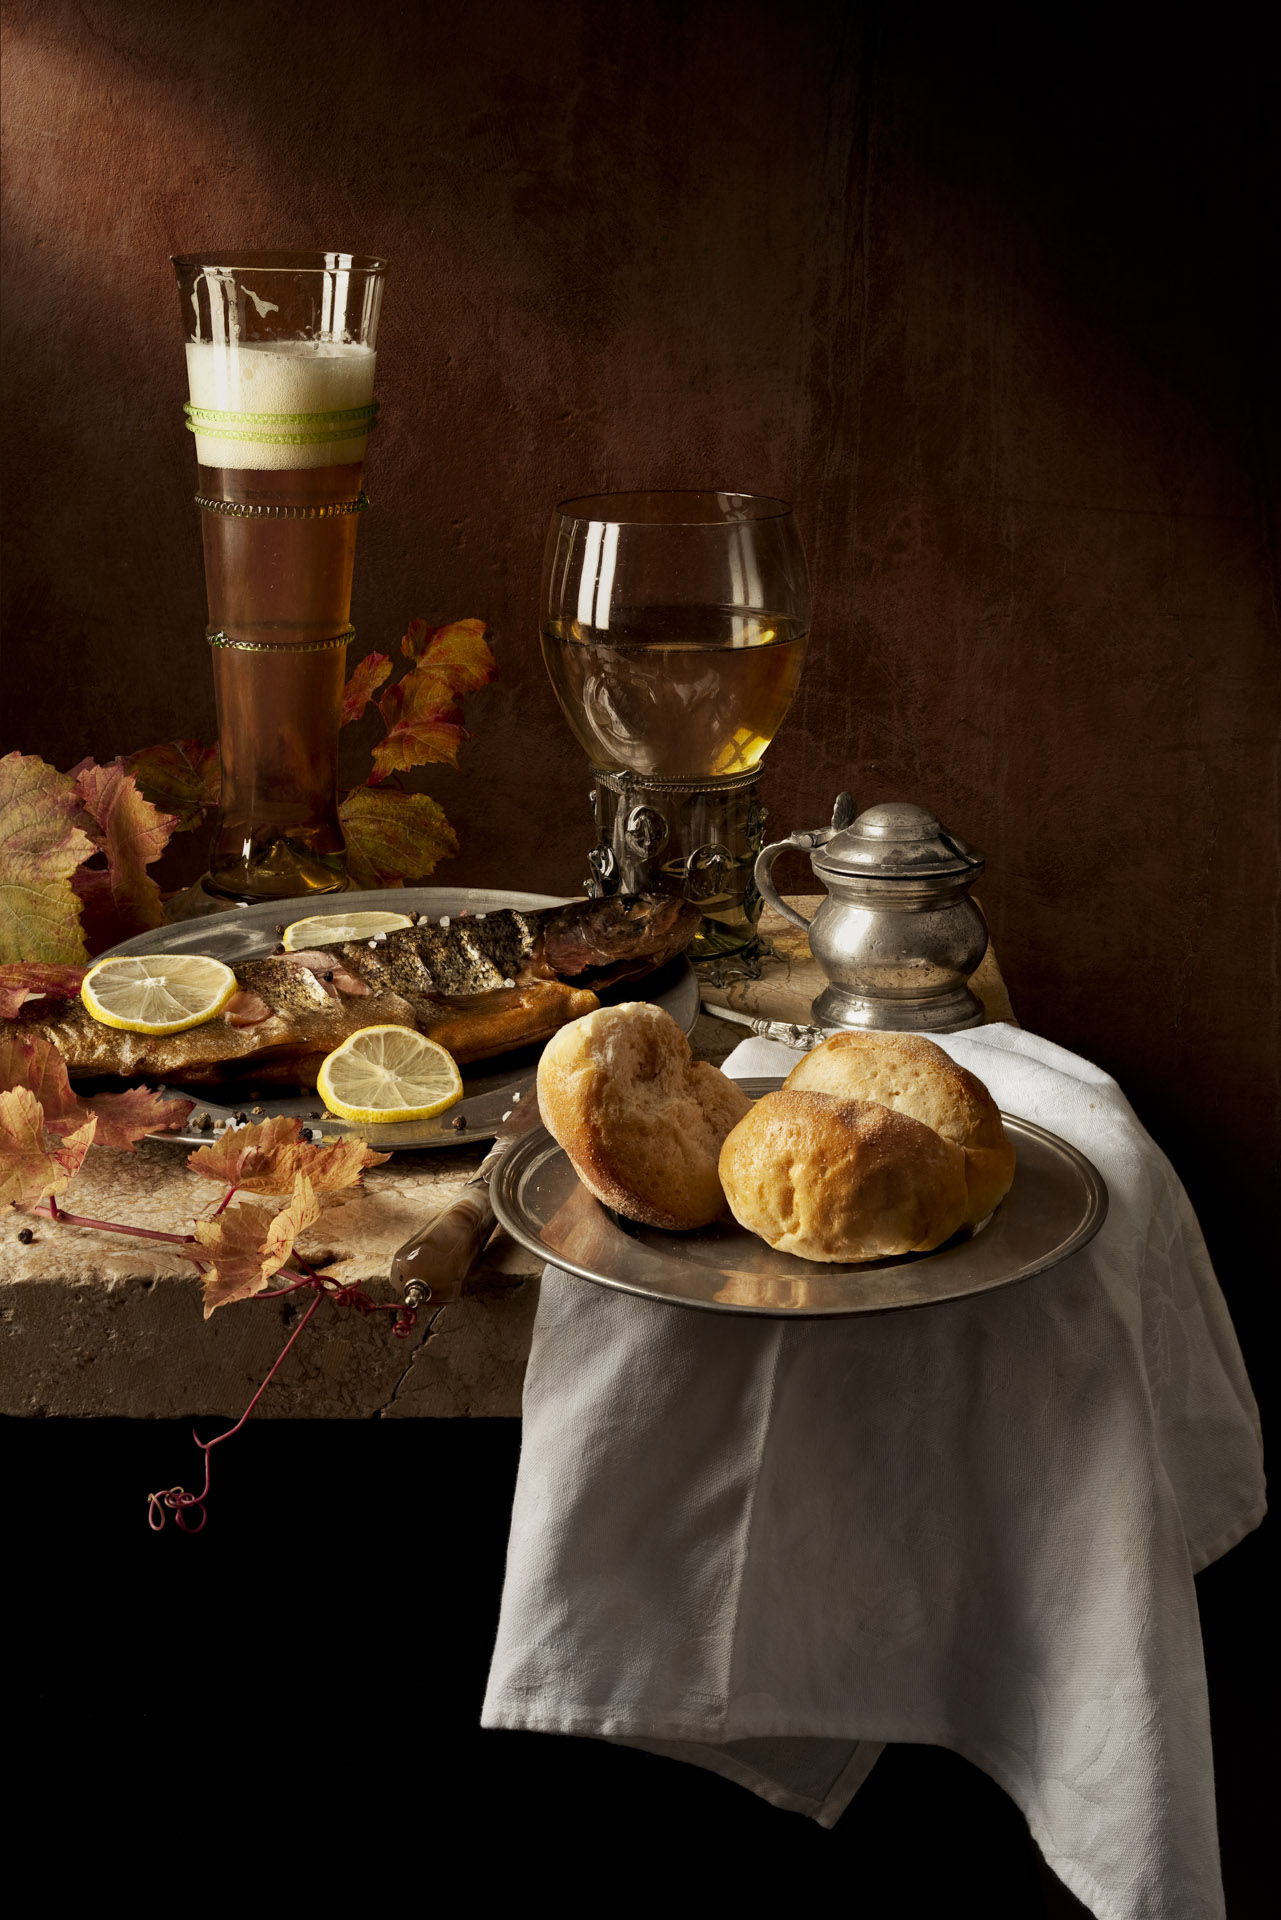 Still life with smoked fish